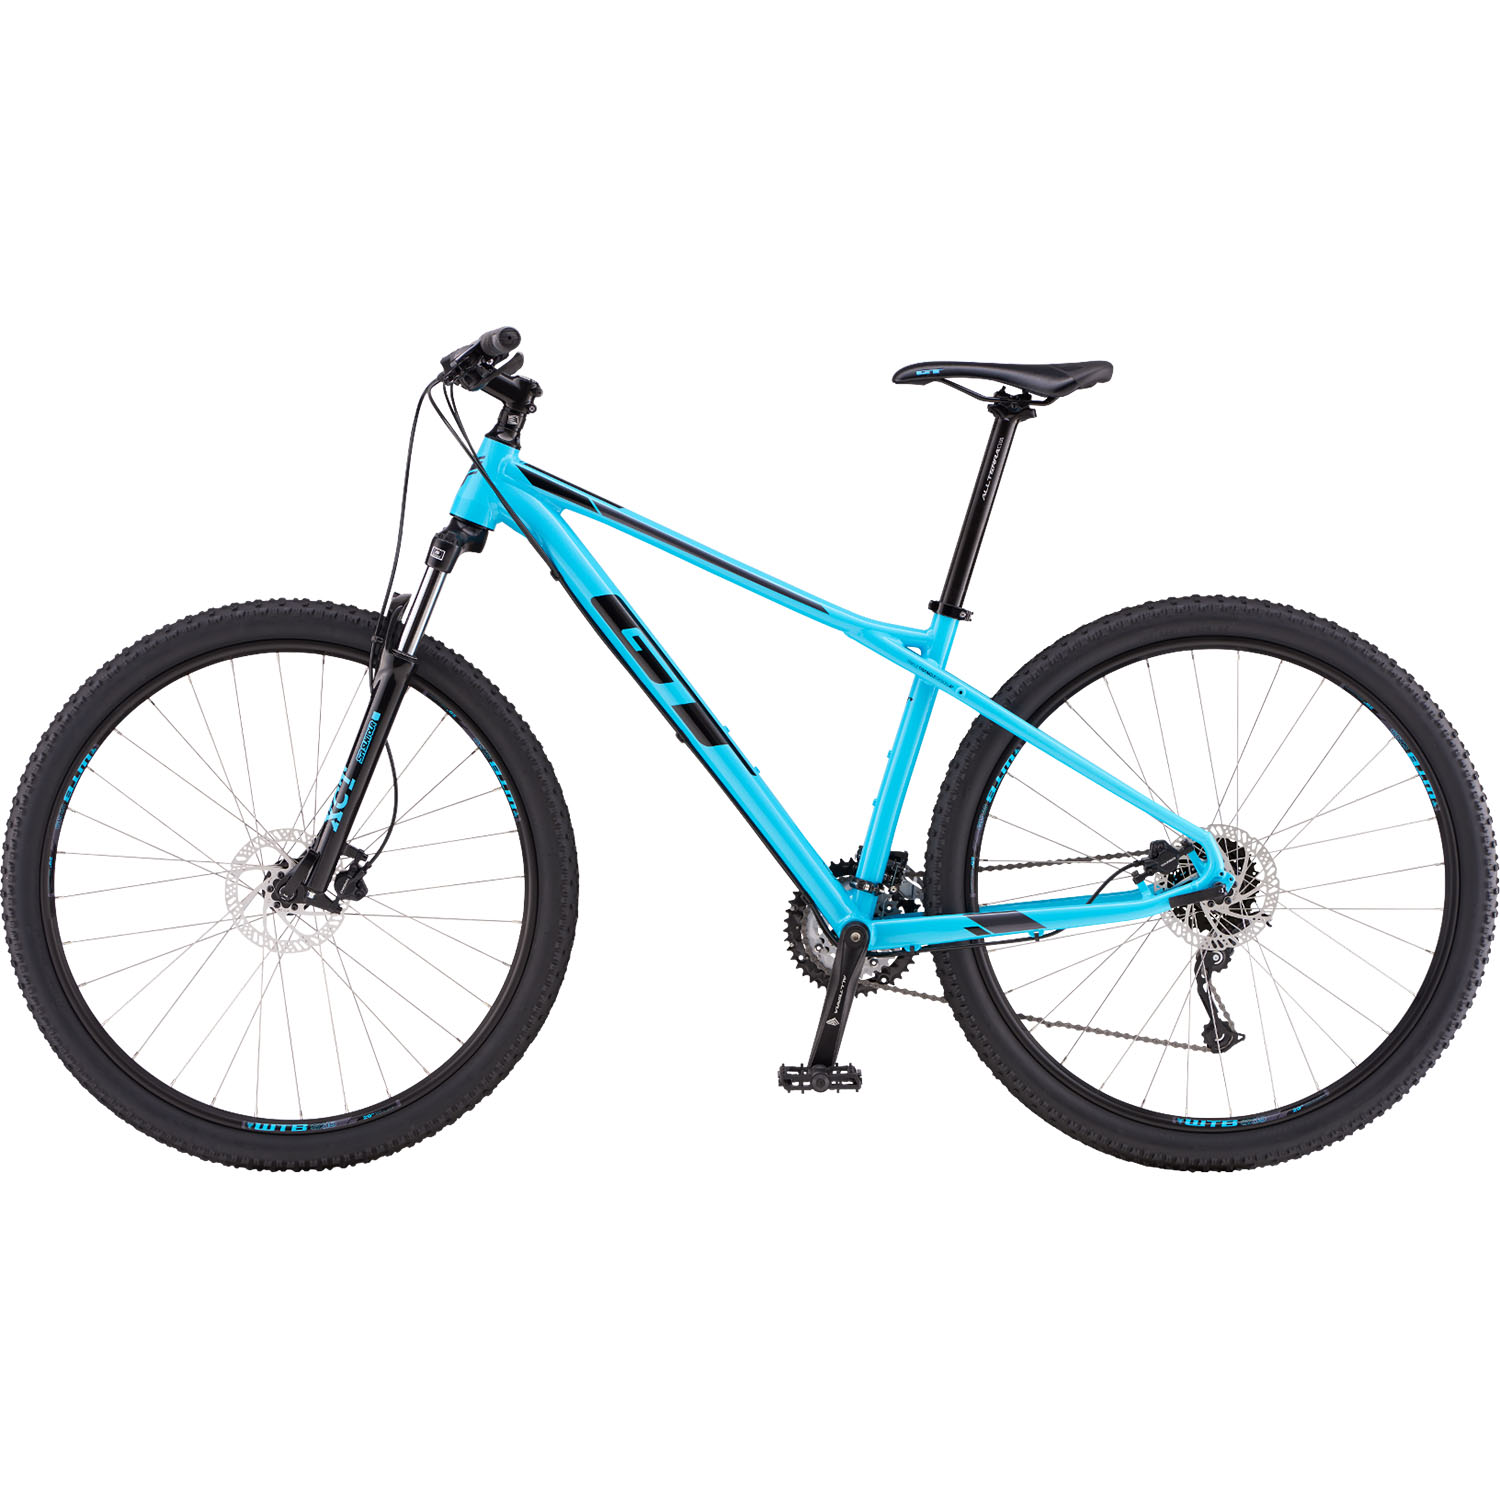 avalanche sport 27 5 zoll mountainbike hardtail mtb. Black Bedroom Furniture Sets. Home Design Ideas